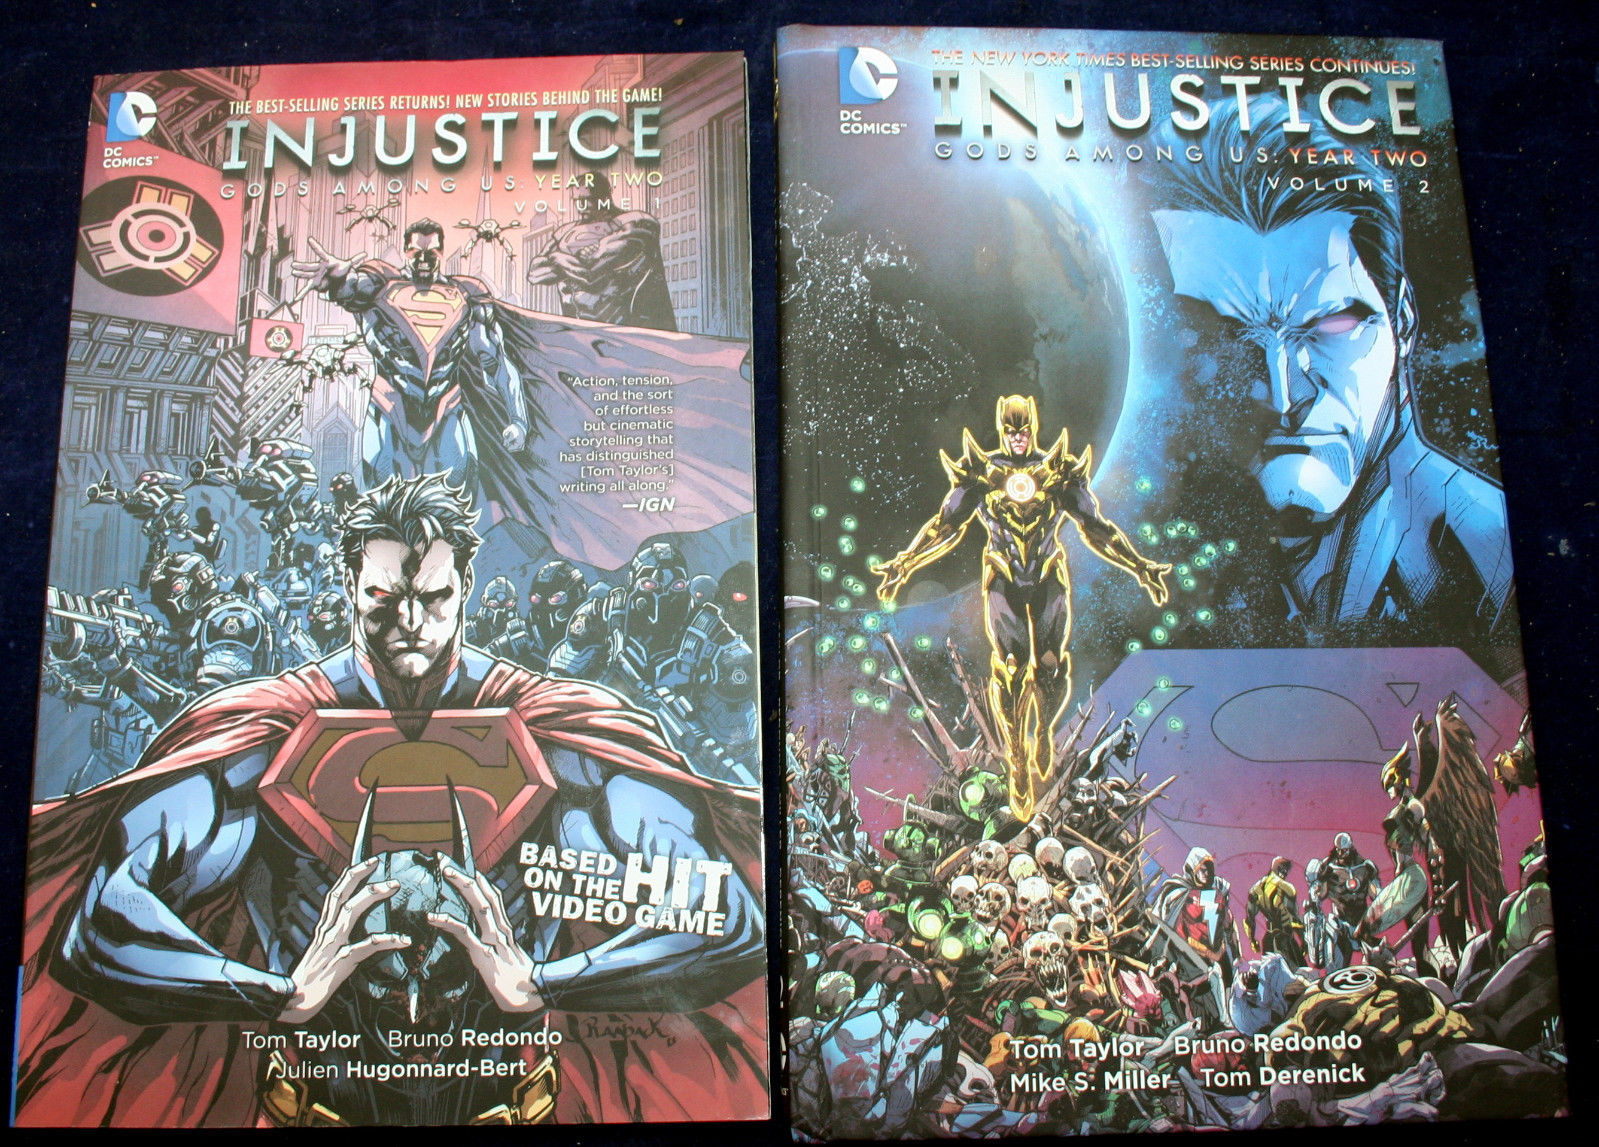 Primary image for INJUSTICE: GODS AMONG US Year 2, Vol 1-2 Miller Buccellato Redondo Taylor FP mix